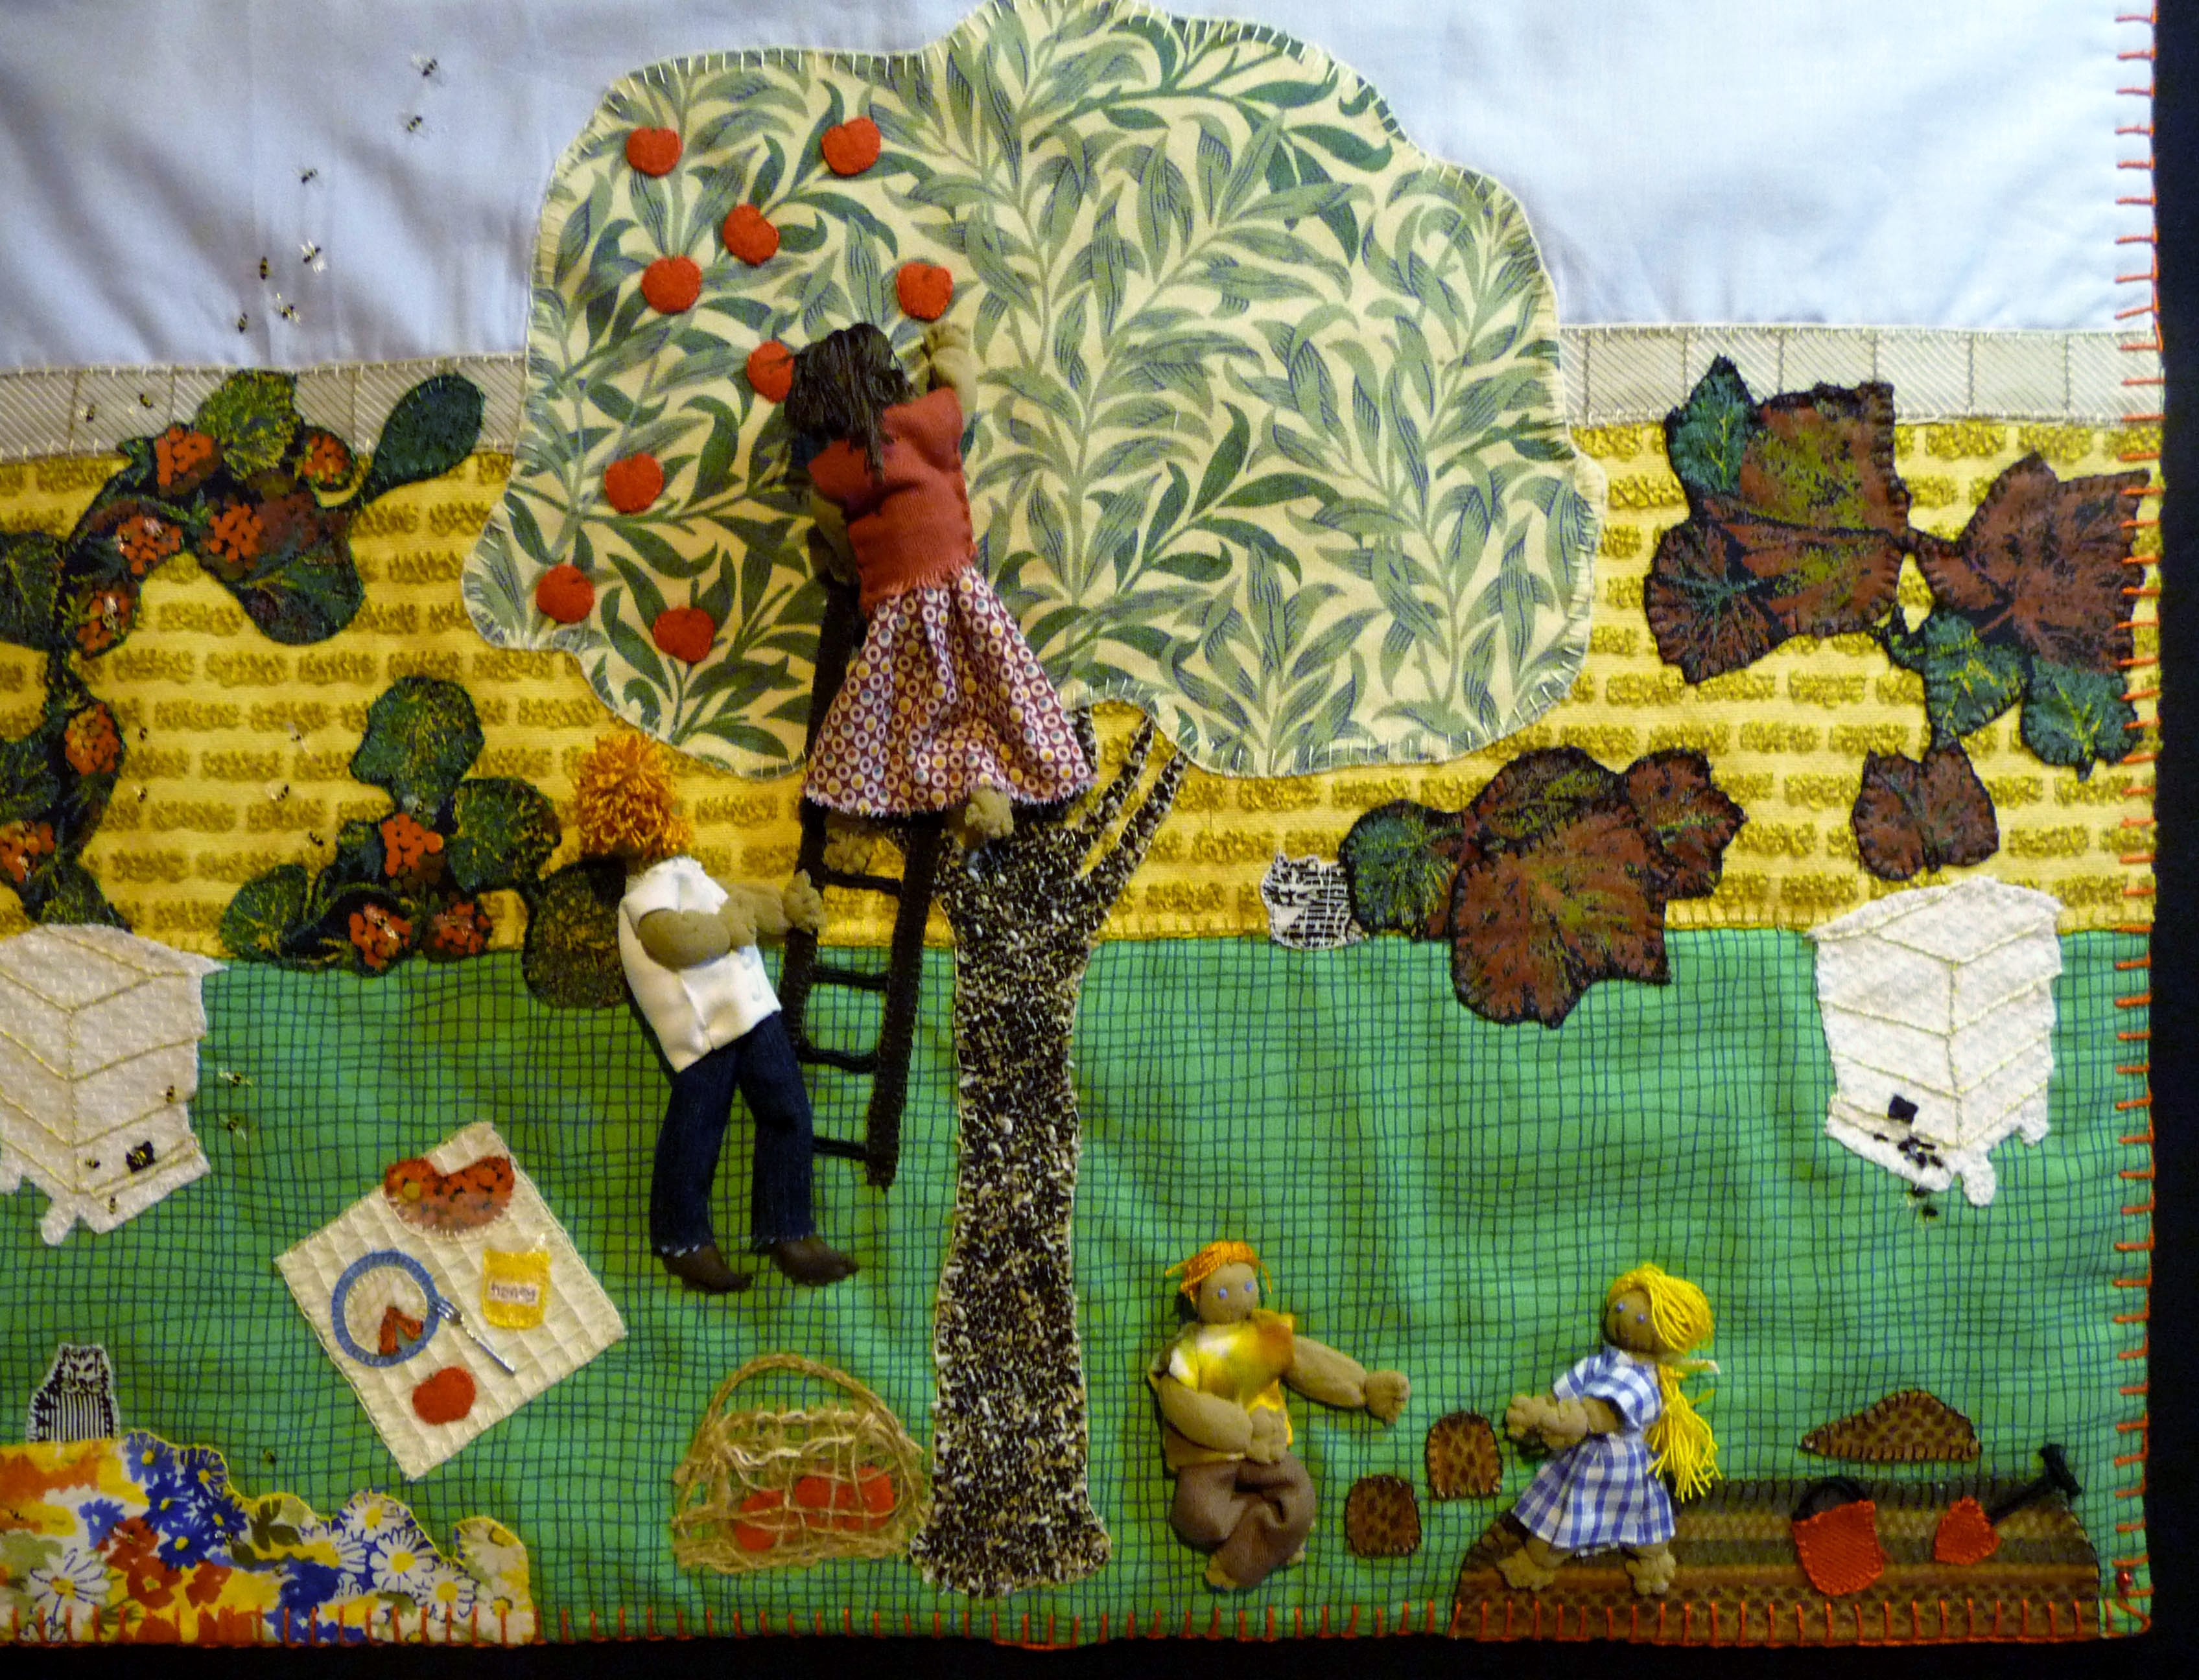 applique embroidery by Janet Wilkinson on a bee theme